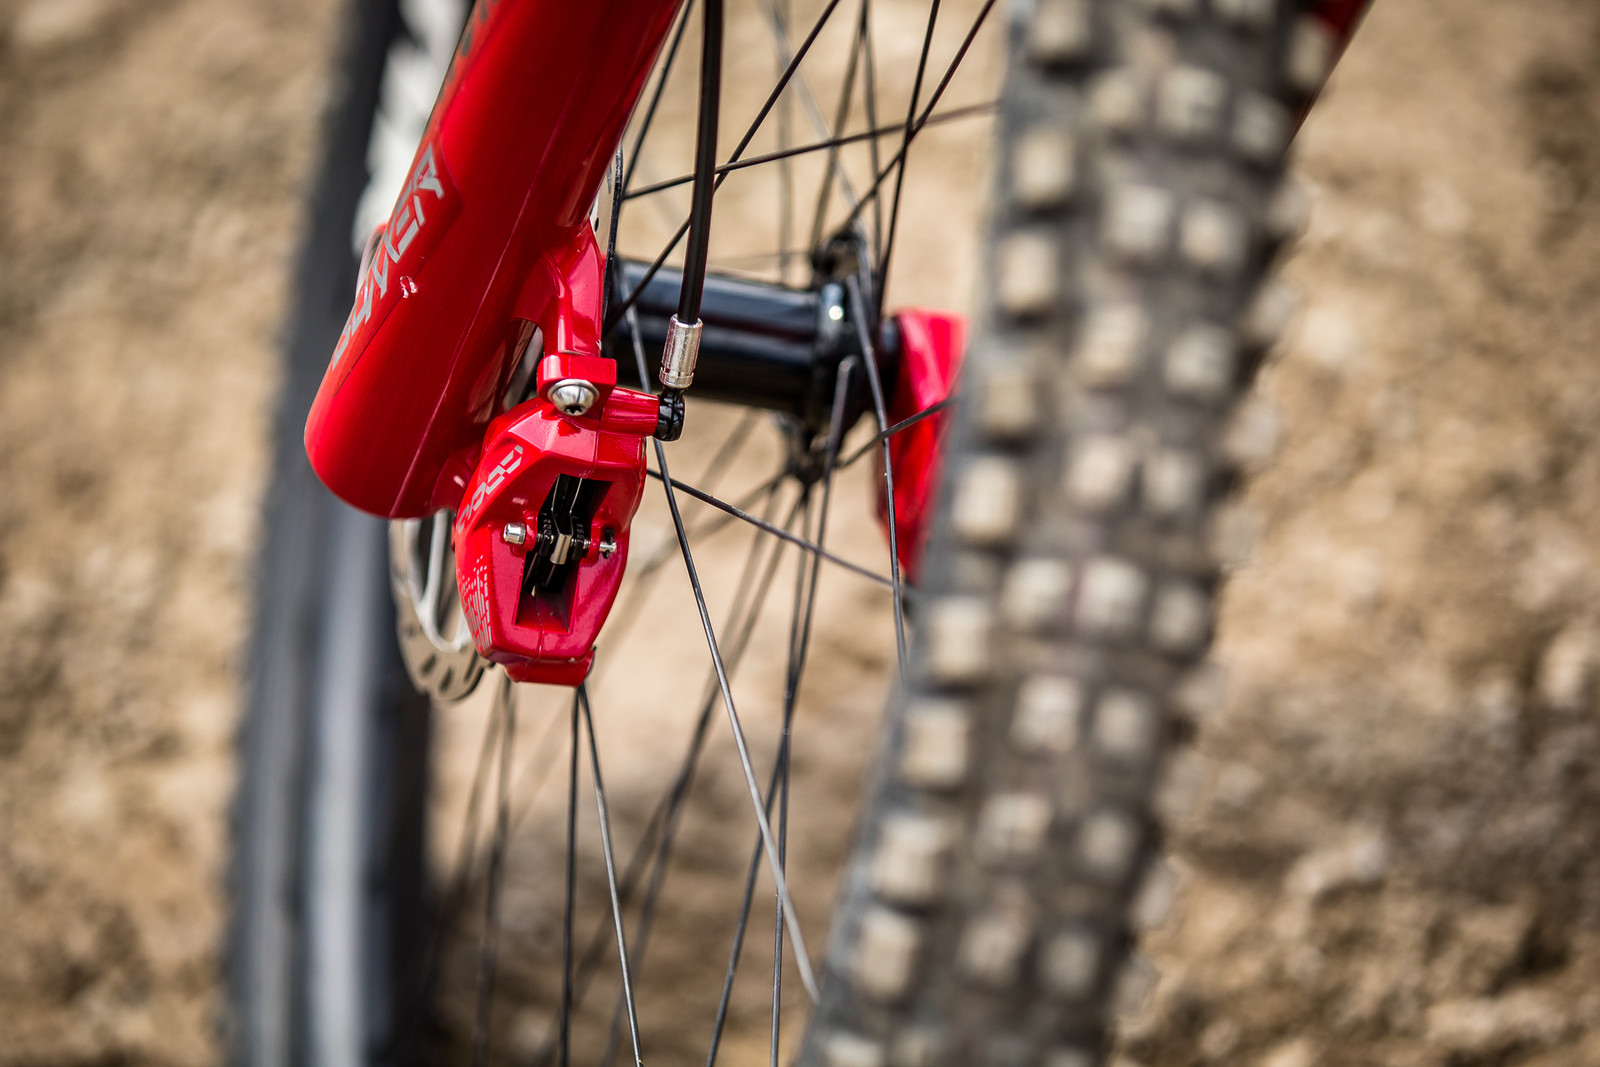 CODE RED. - WINNING BIKE - Amaury Pierron's Commencal Supreme DH 29 - Mountain Biking Pictures - Vital MTB